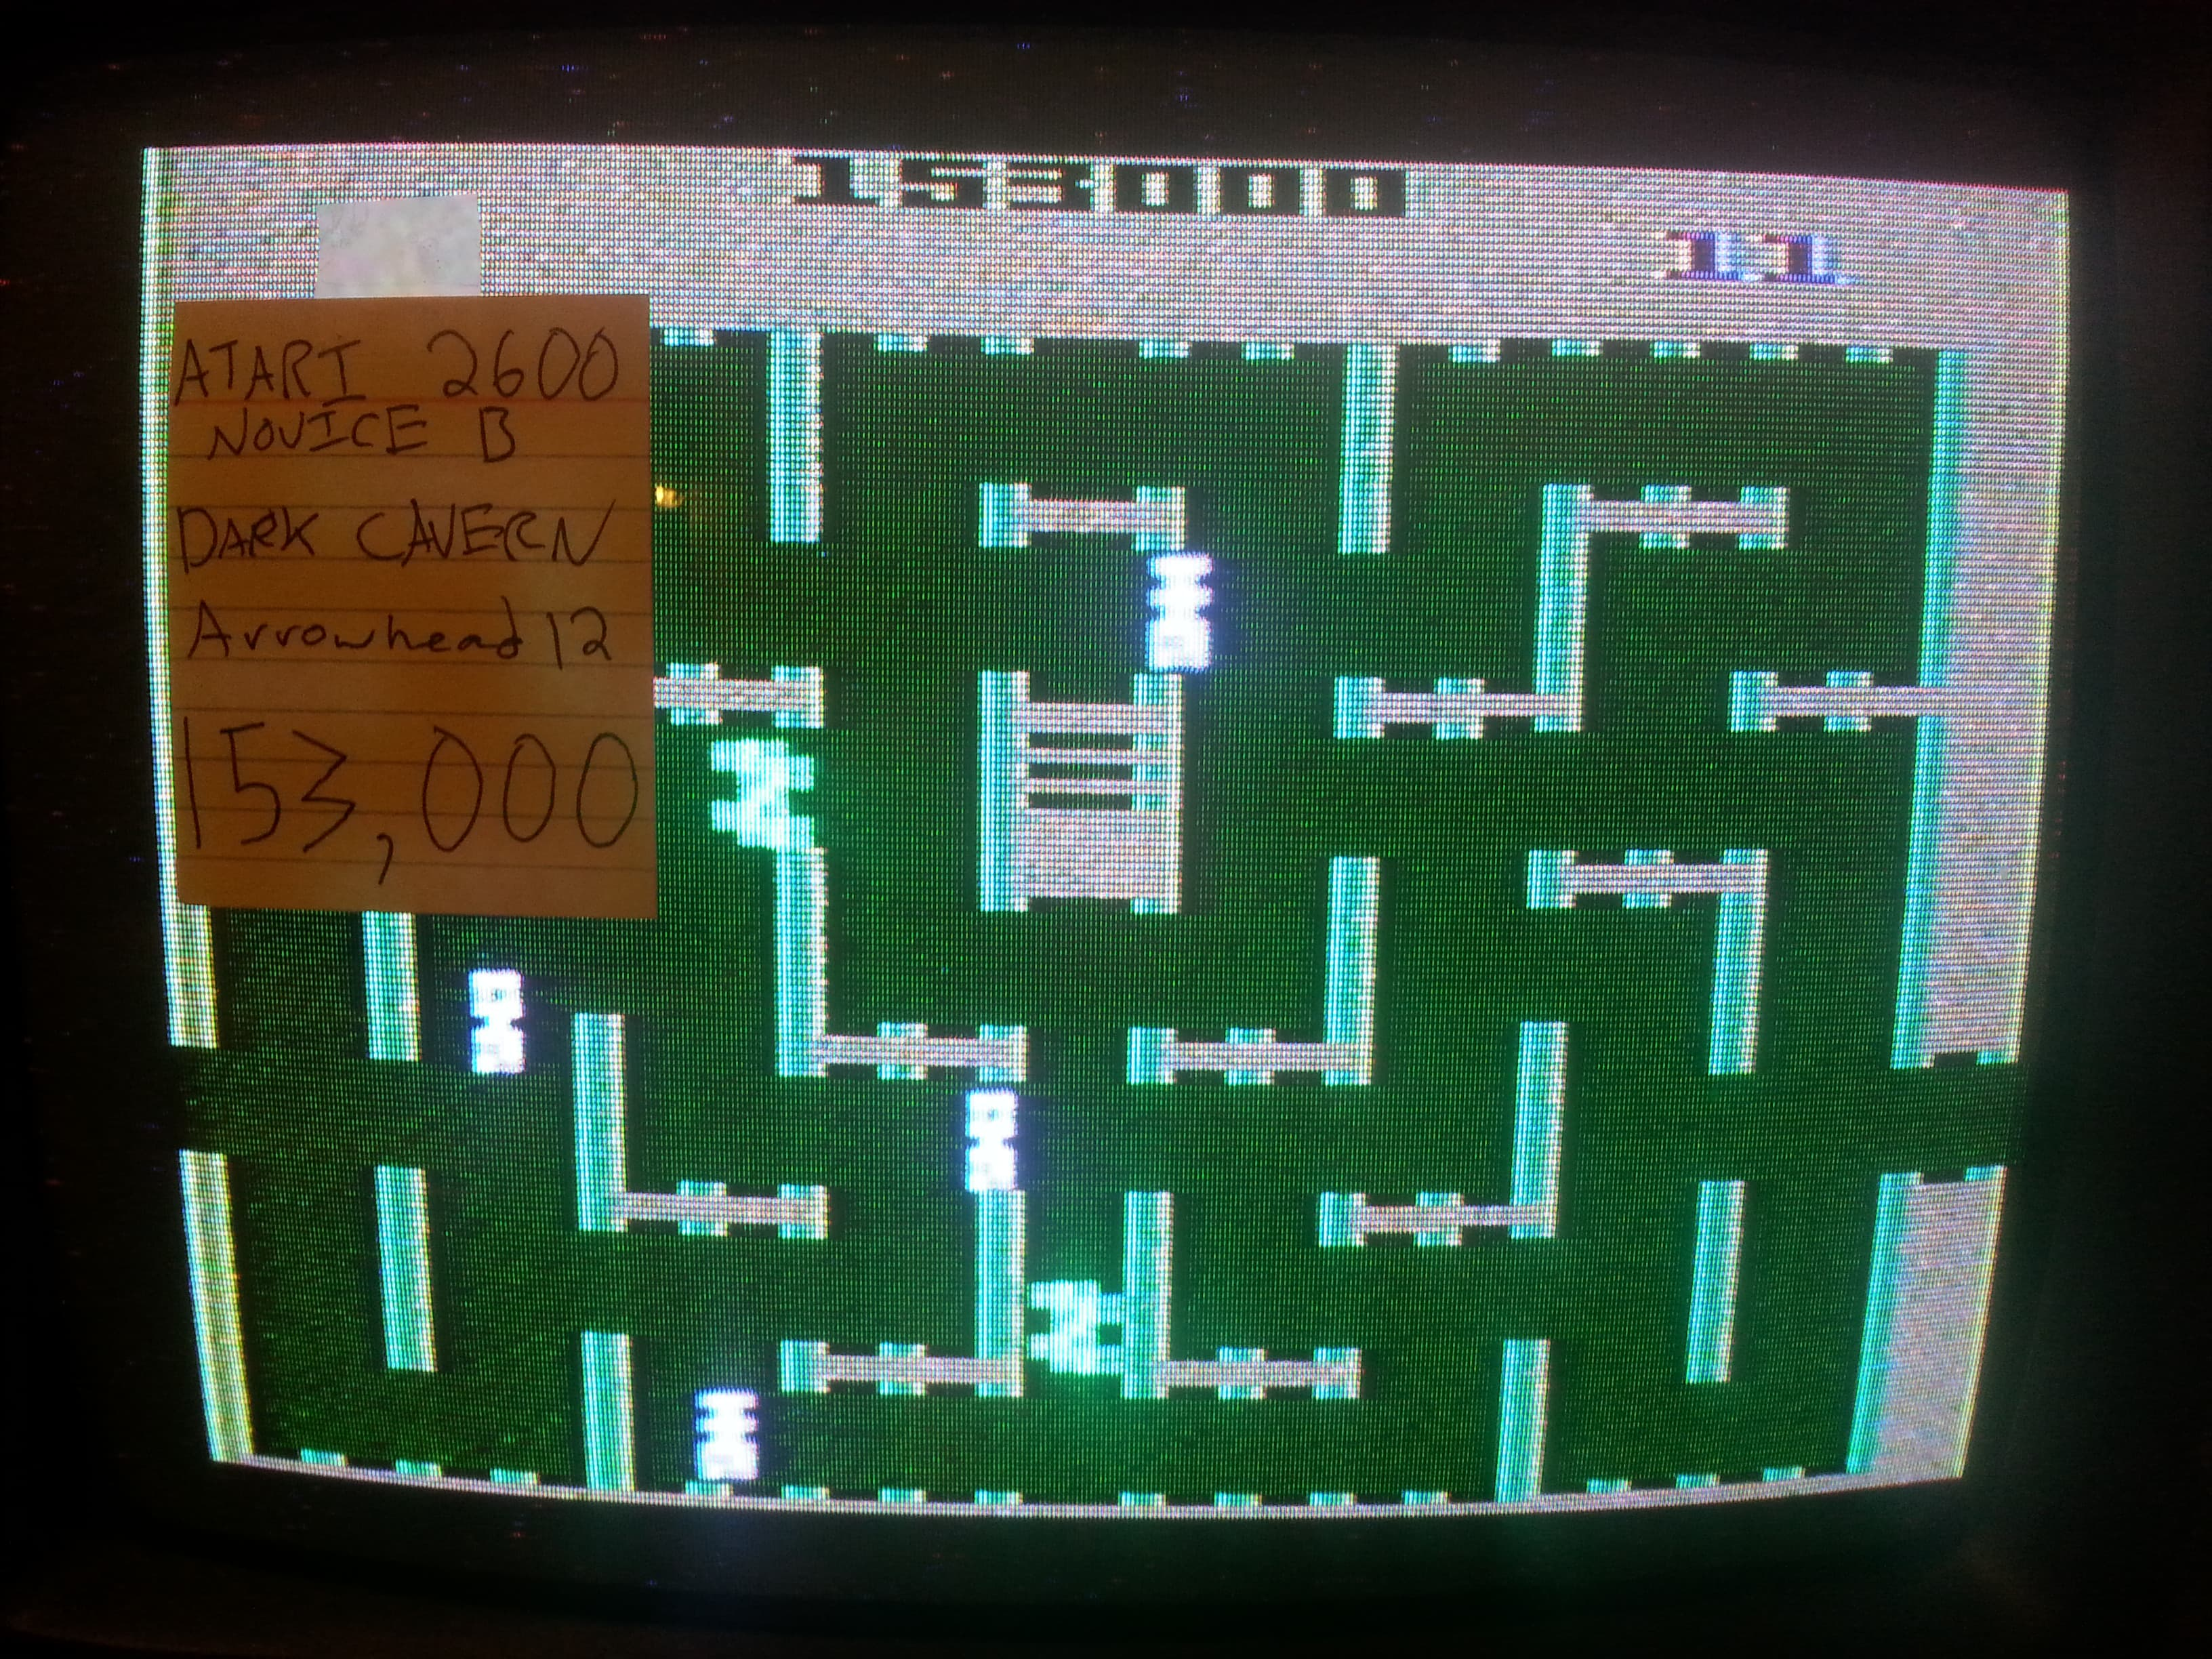 Arrowhead12: Dark Cavern (Atari 2600) 153,000 points on 2018-09-30 14:30:56